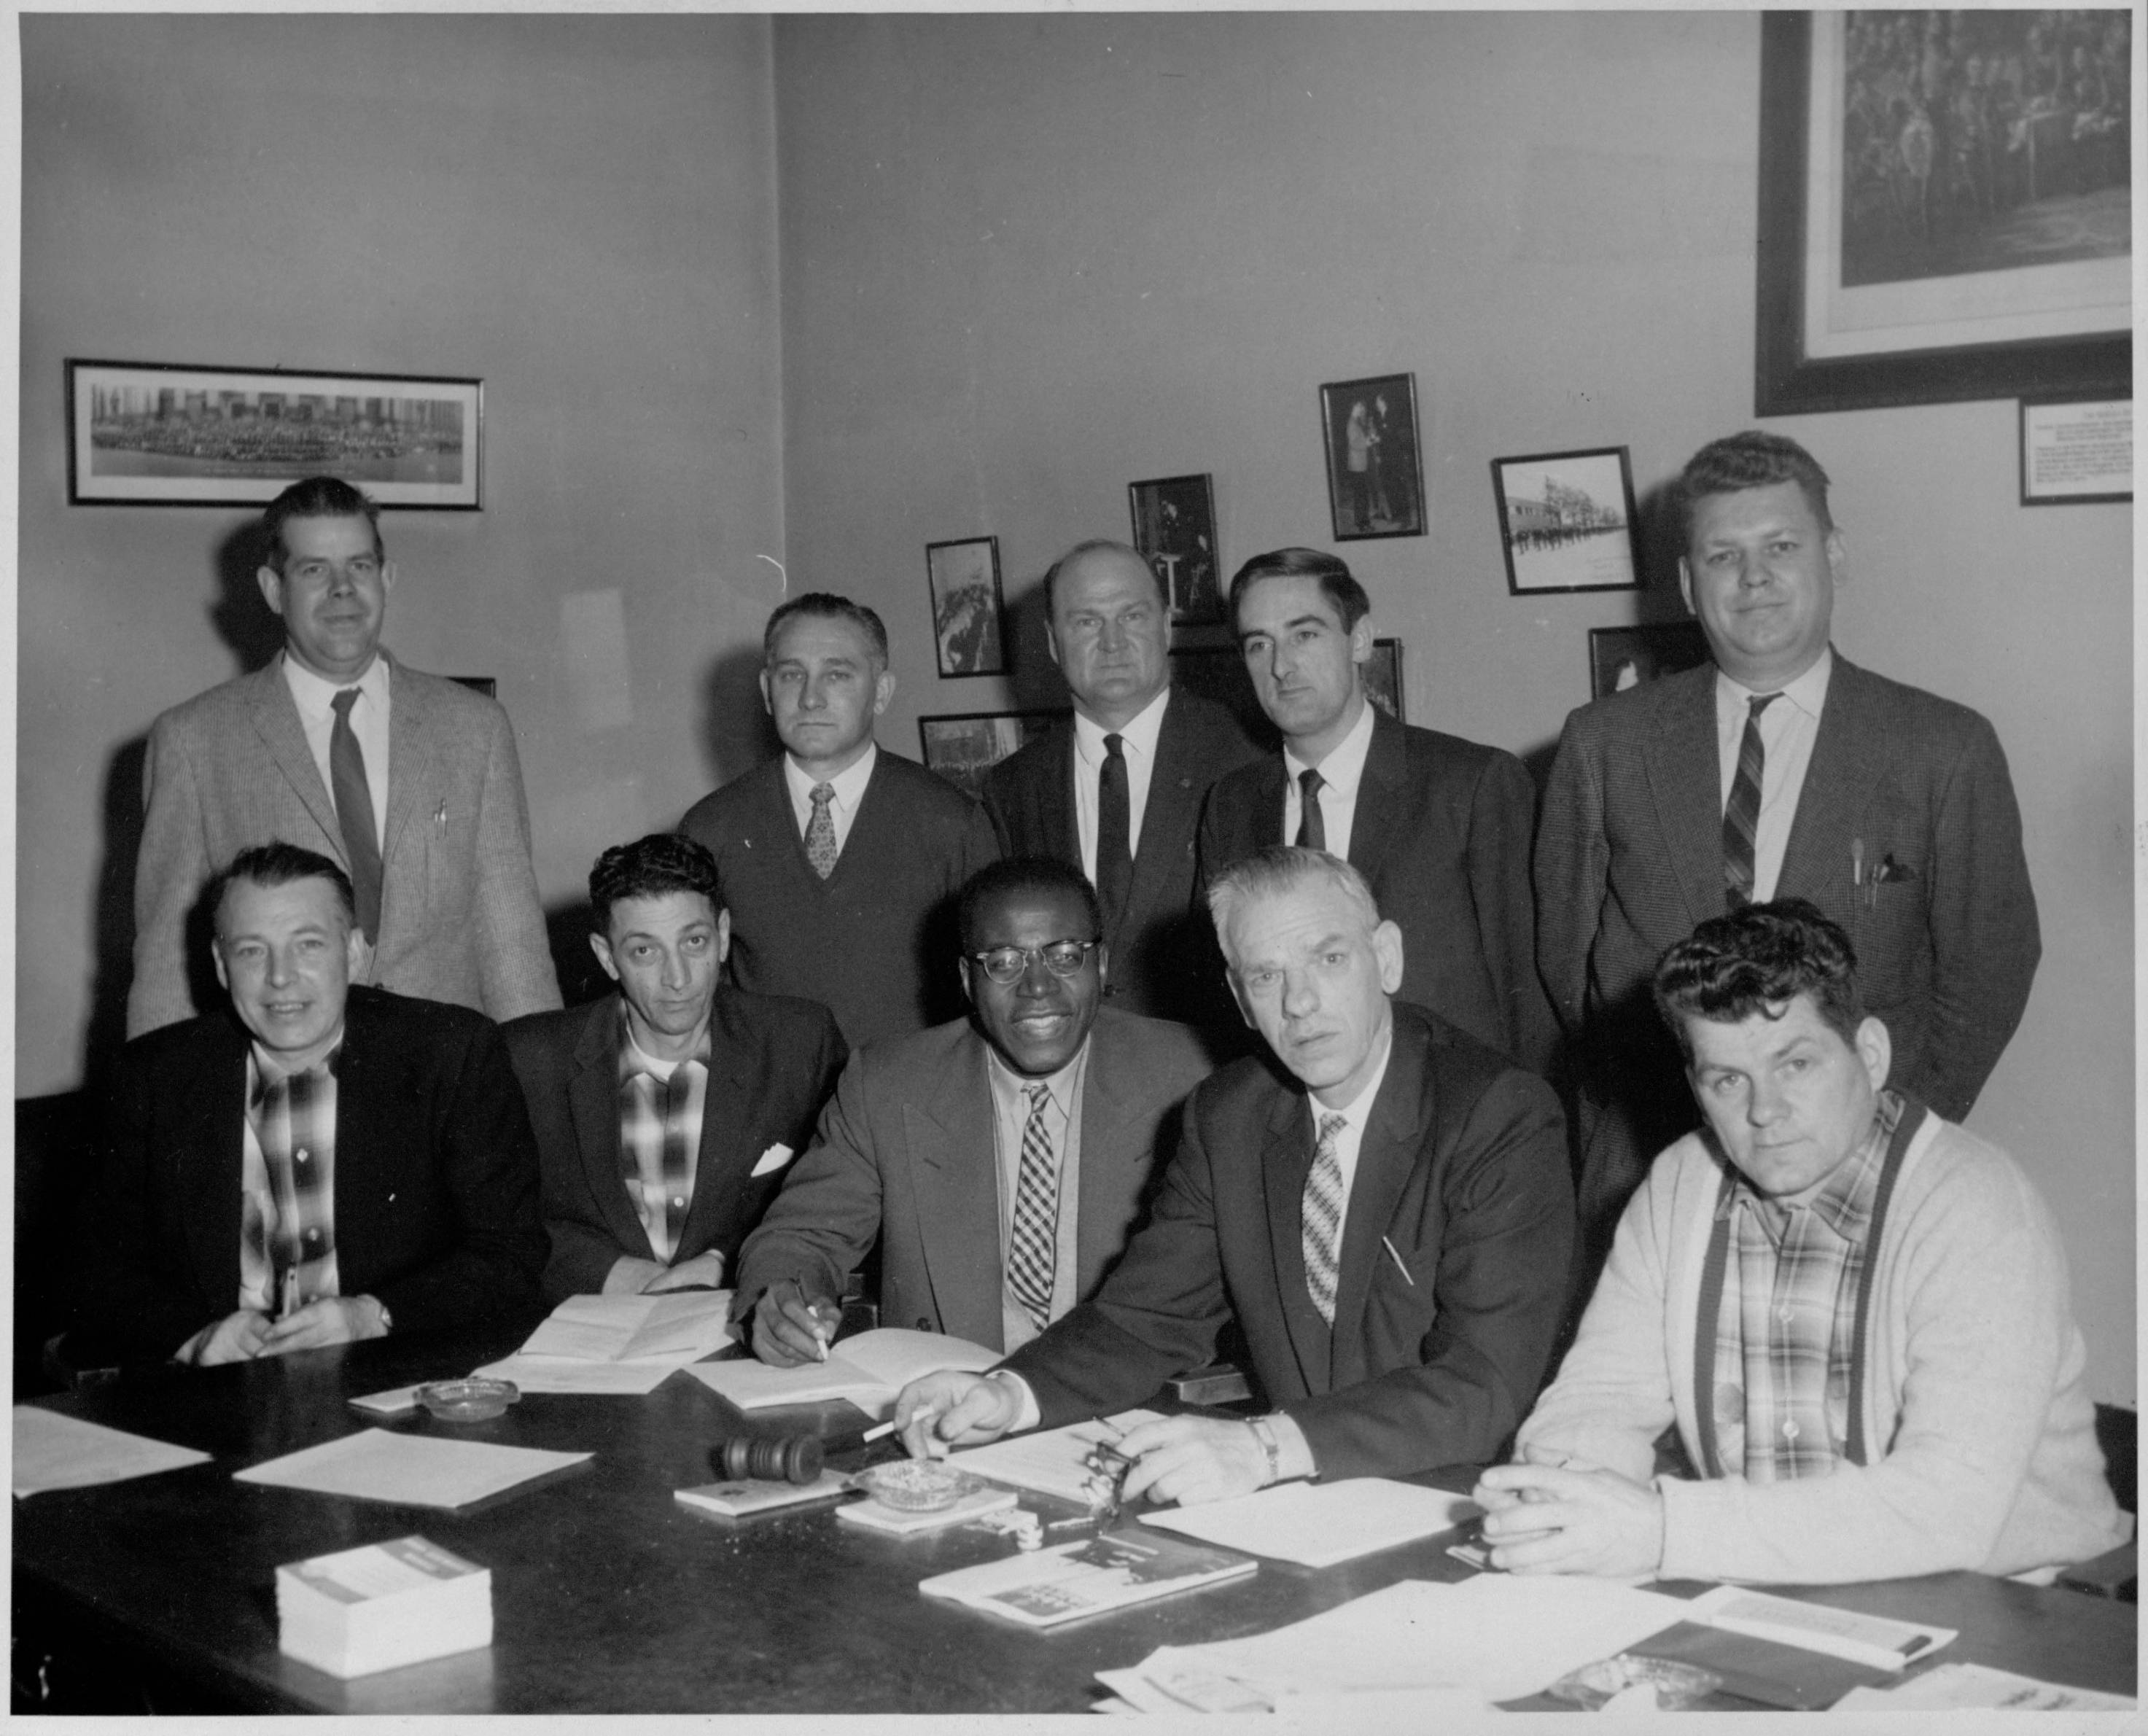 Henry Langdon and the executive committee of the International Association of Machinists Lodge 1751 in 1960. The Union became the International Association of Machinists and Aerospace Workers in 1965. Standing, left to right, are Tim Horst; L. Brosseur; B.T. Horan, general chairman of the l lodge; Mike Pitchford, shop chairman; and E. Davidson, financial secretary. Seated, left to right, are J. Comeau, trustee; R. Galazzo, trustee; Henry Langdon, recording secretary; Victor Rugenius, president; and E.D. Bowles, treasurer. PHOTO: L1985-13_018_019_029, International Association of Machinists and Aerospace Workers Photograph Collection, Southern Labor Archives. Special Collections and Archives, Georgia State University